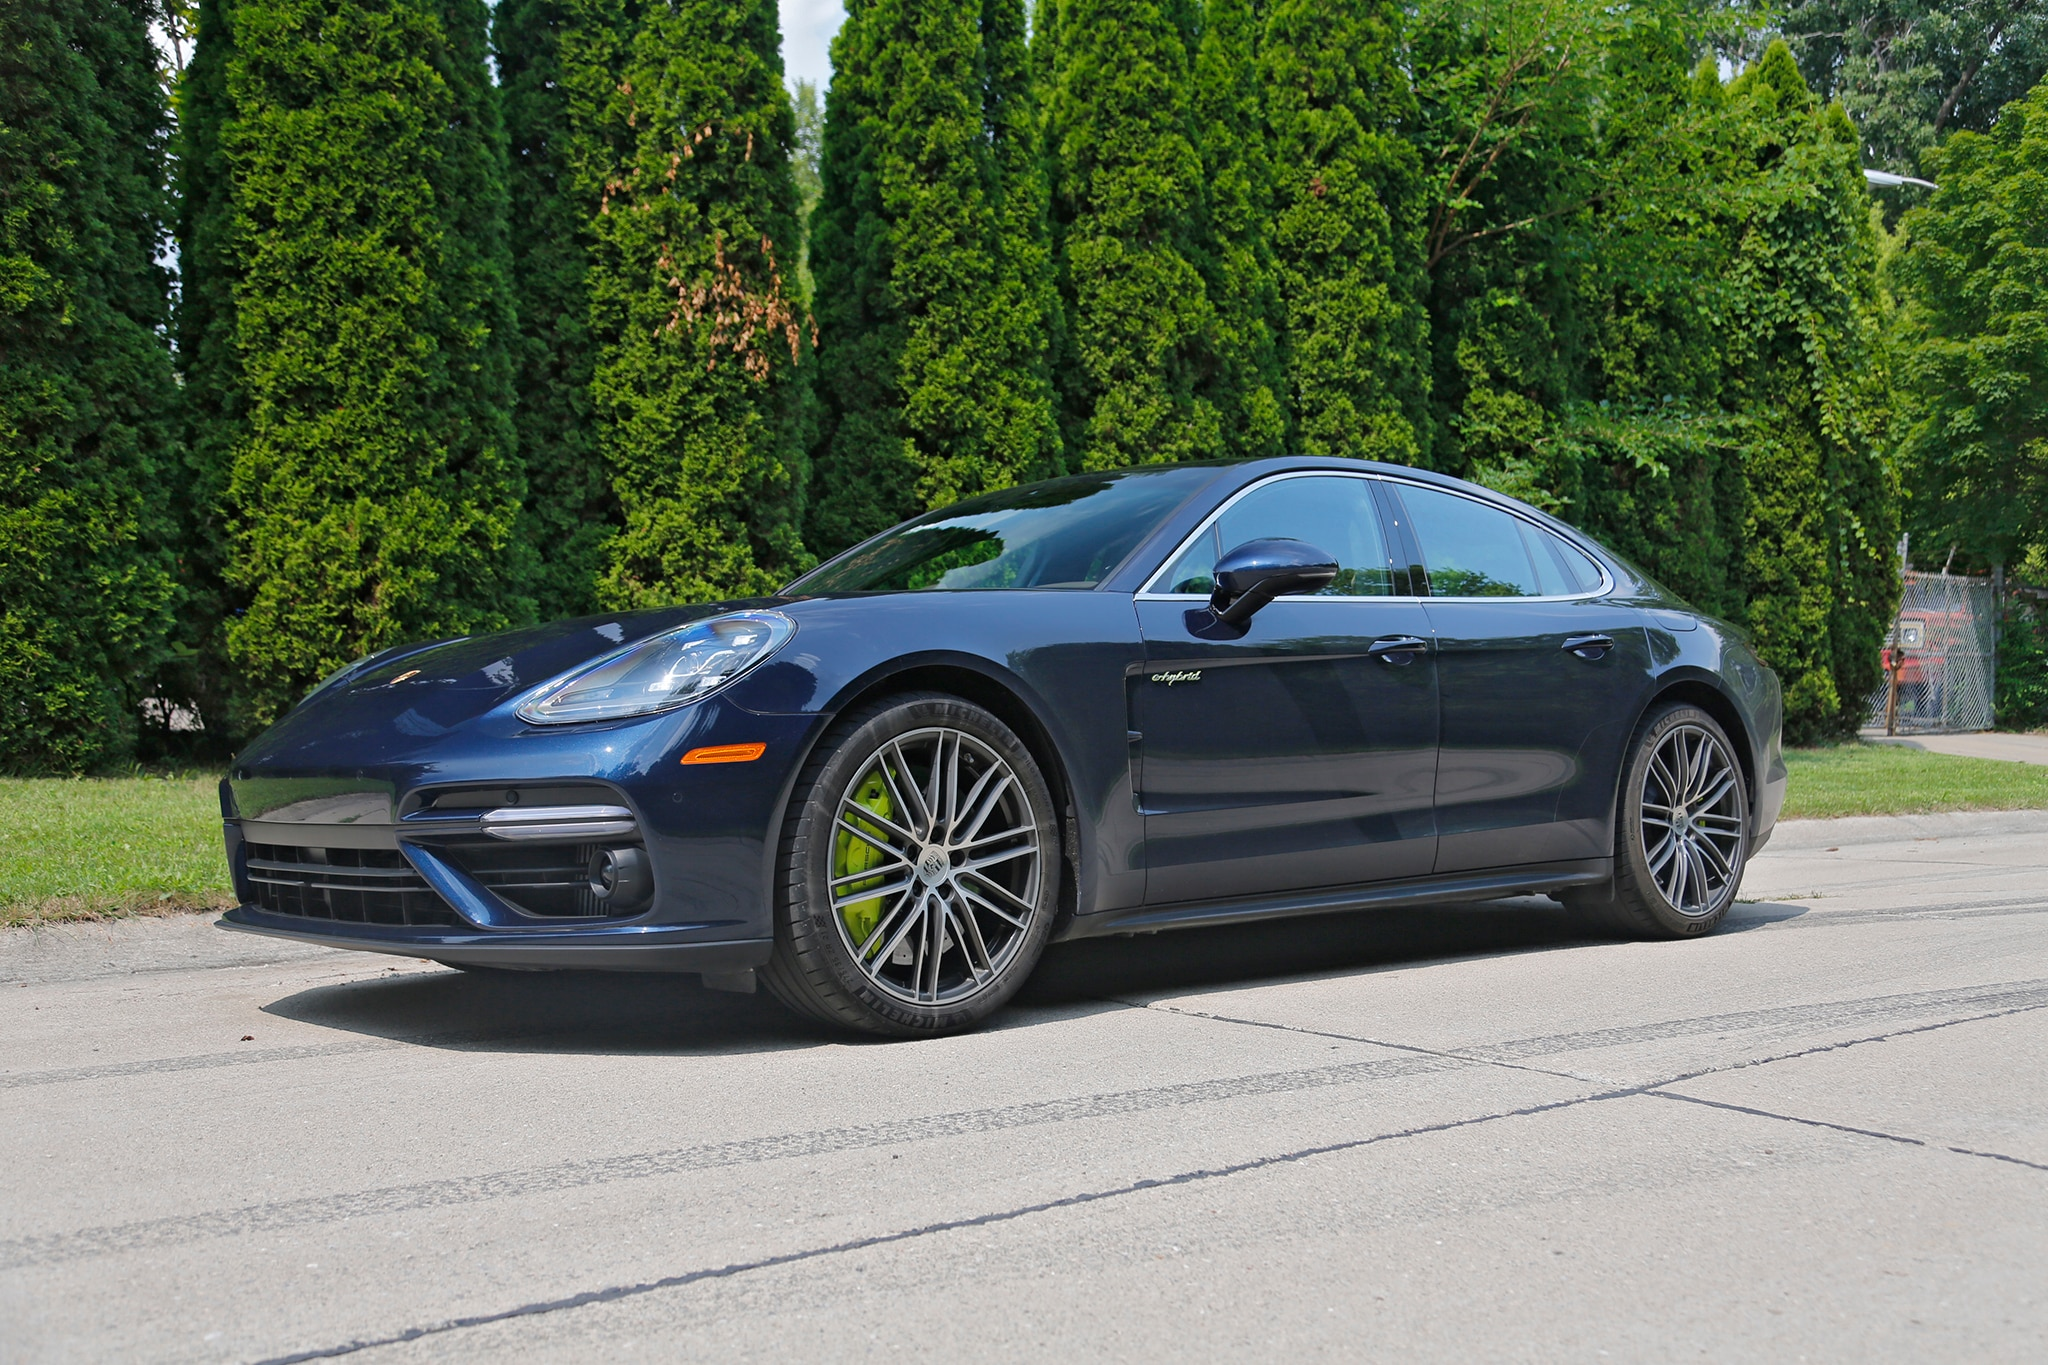 Playing Poser In A 2018 Porsche Panamera Turbo S E Hybrid